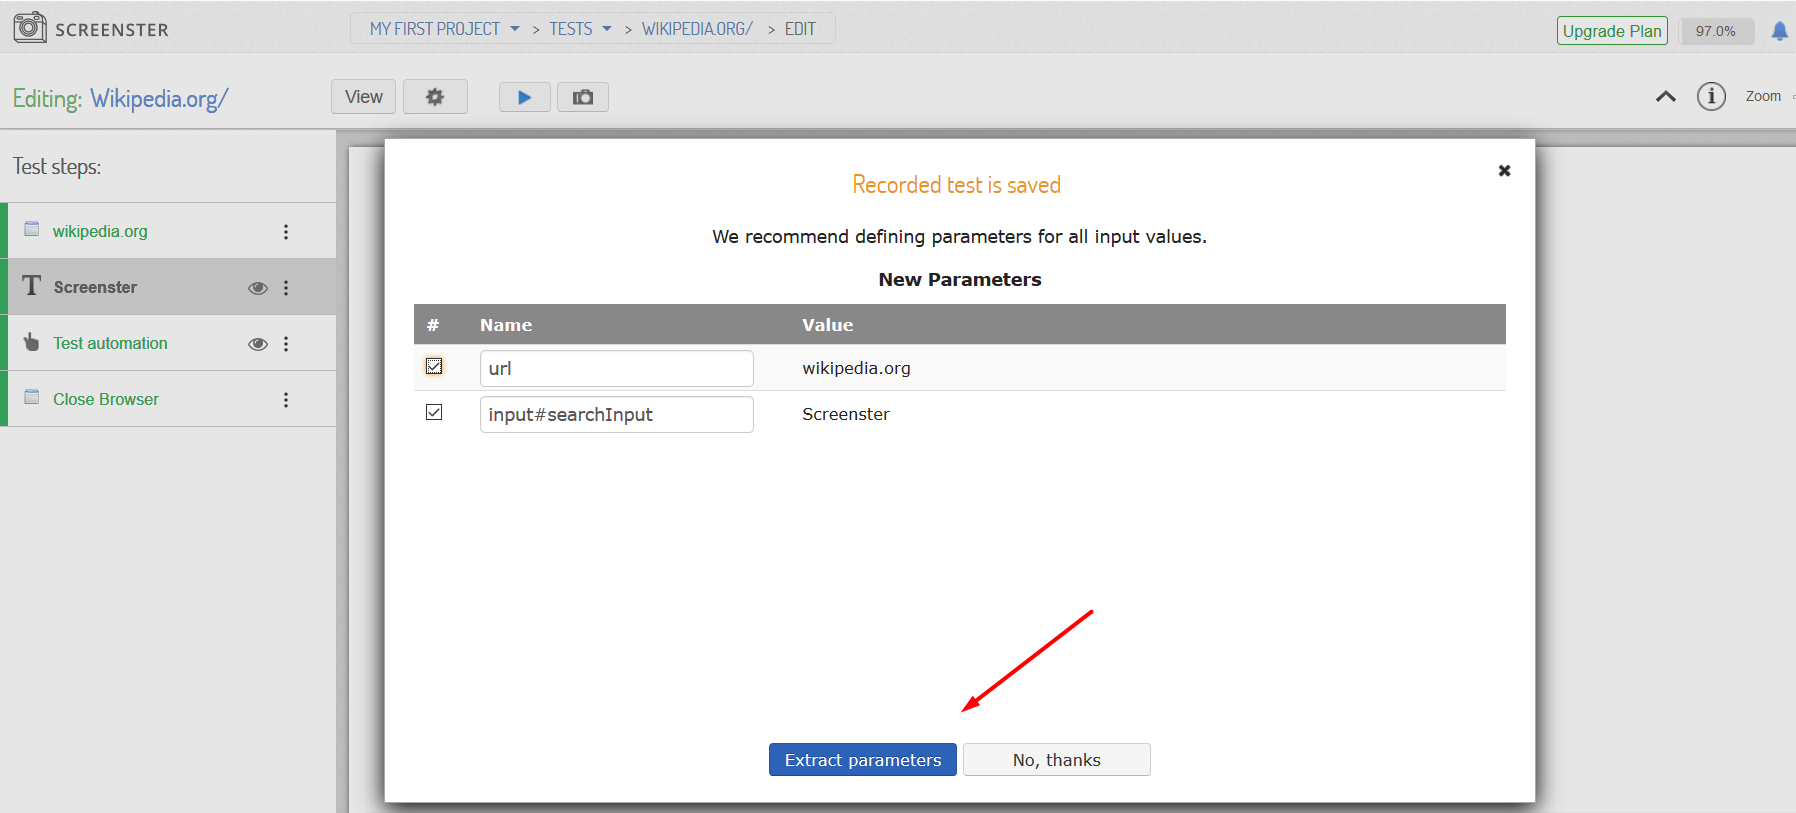 Visual UI testing: extract test parameters pop-up